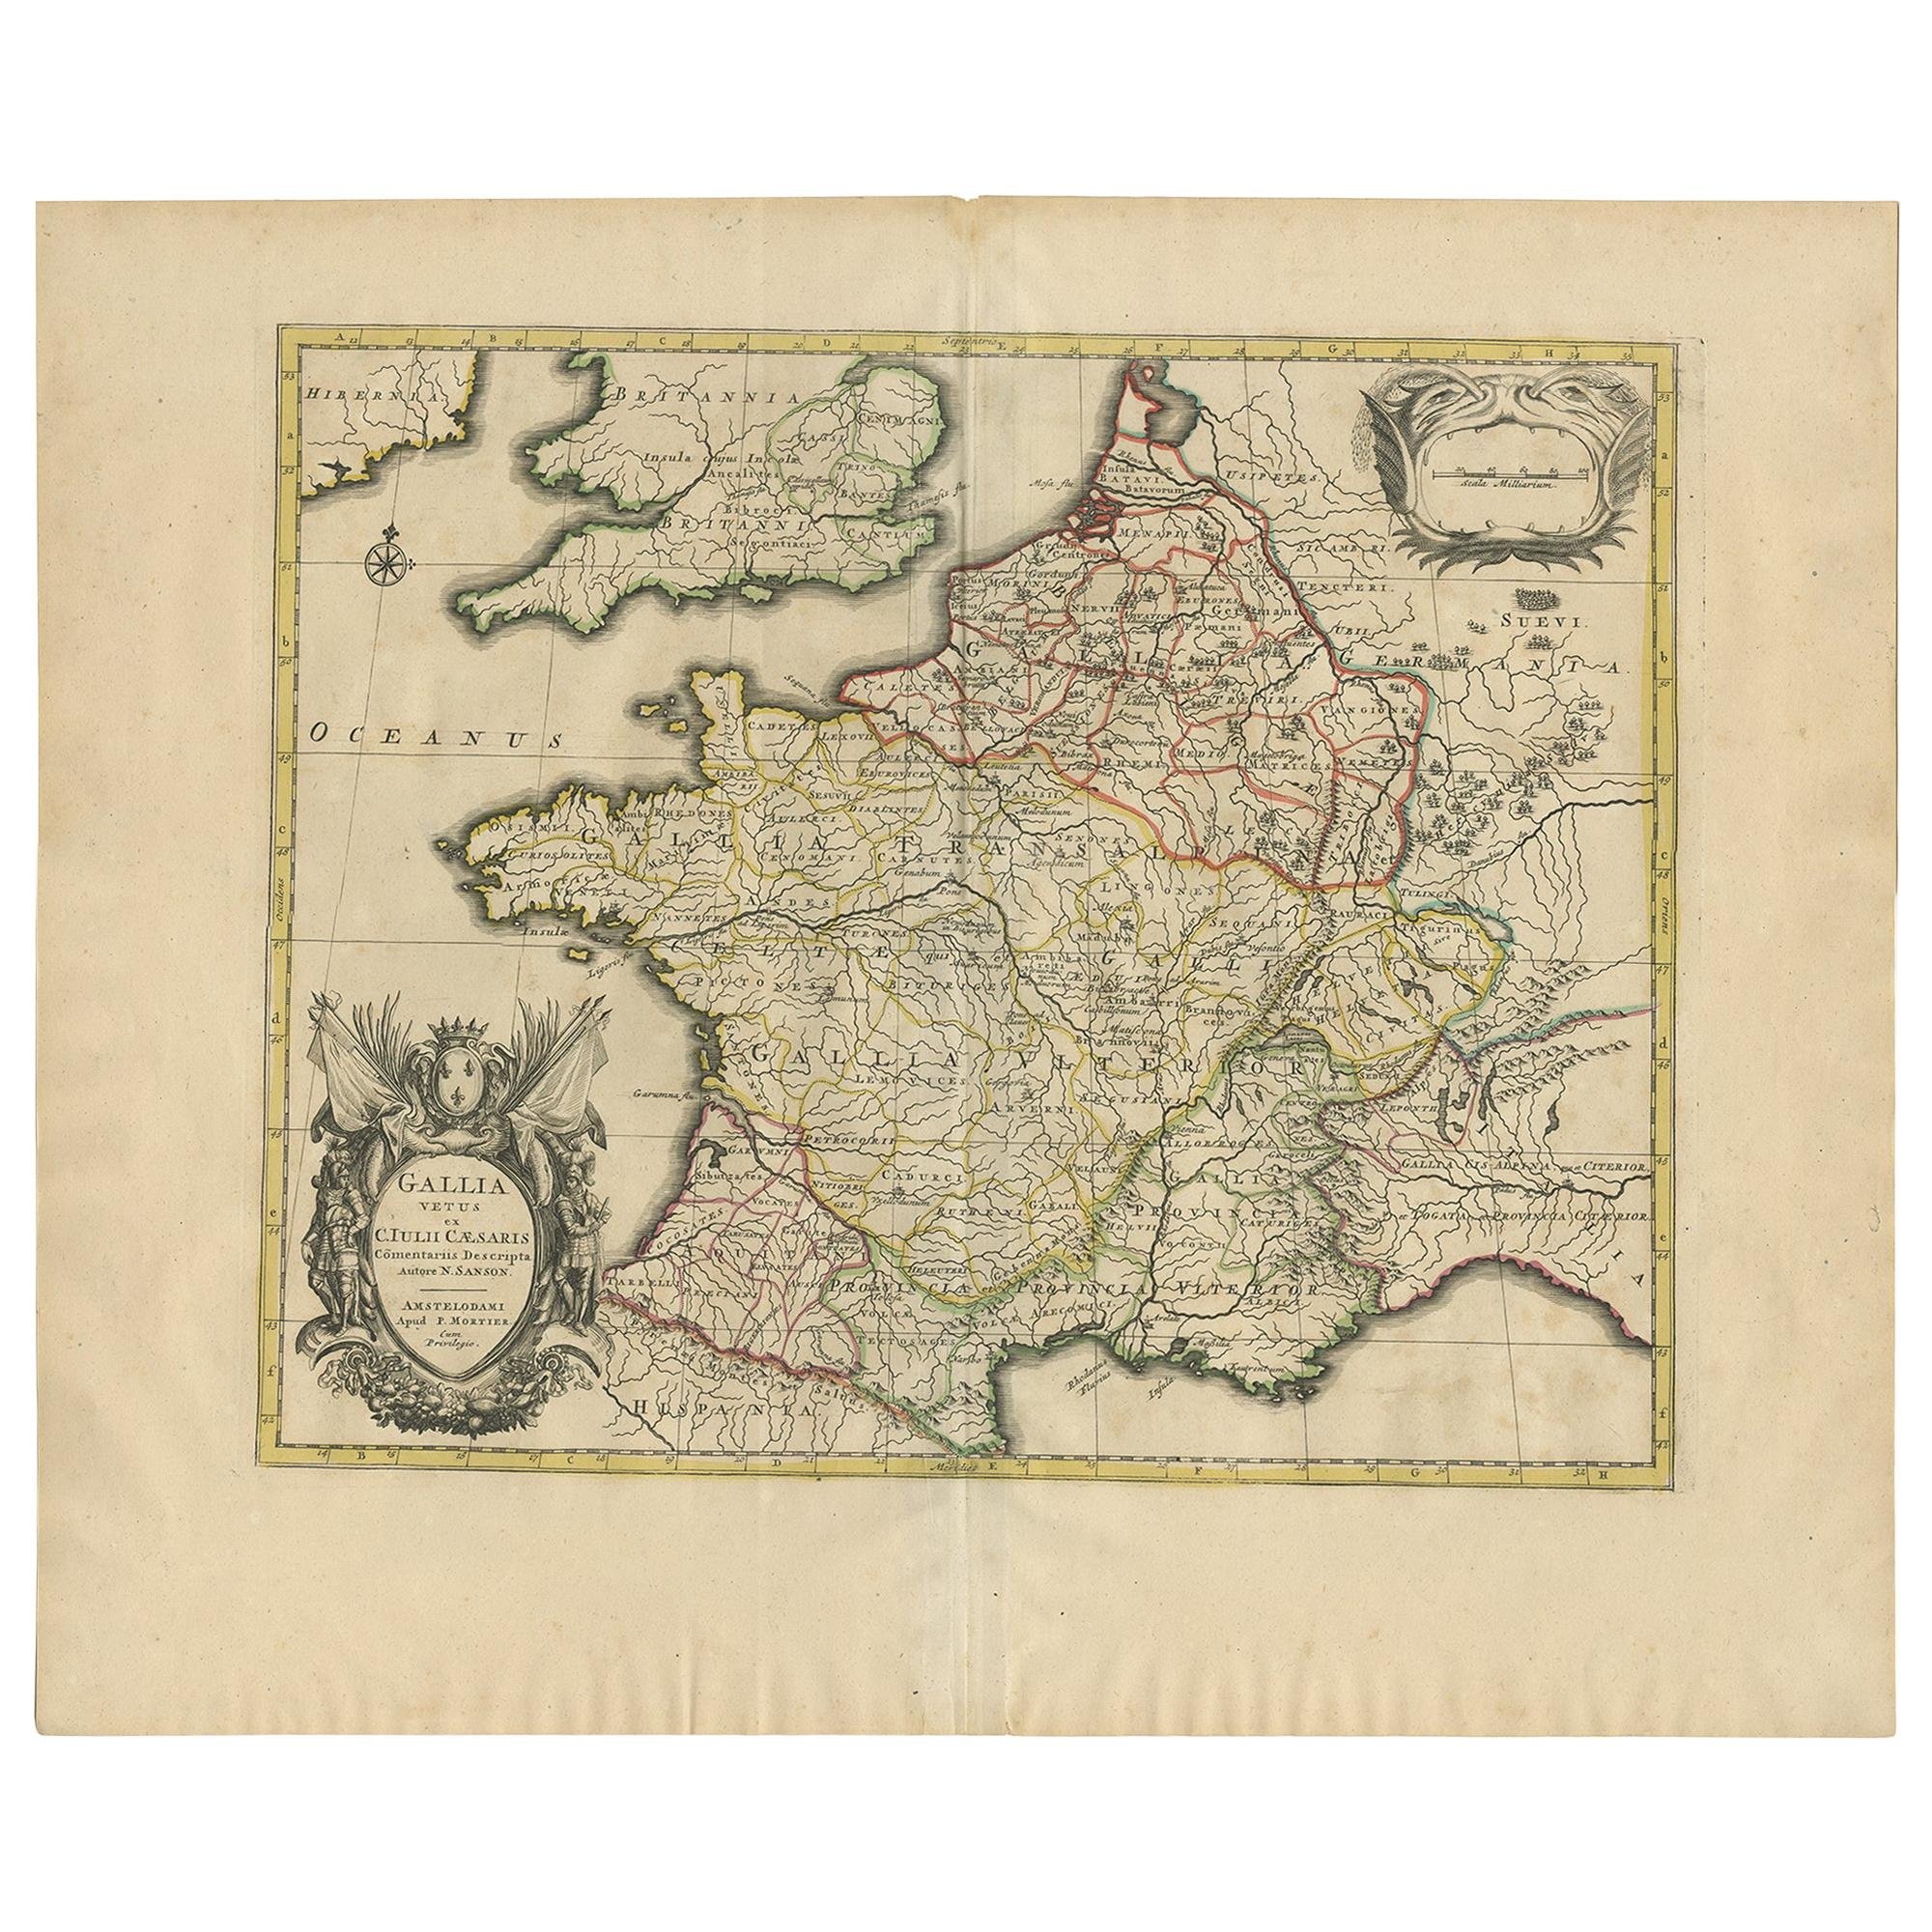 Antique Map of France by Mortier 'c.1710'